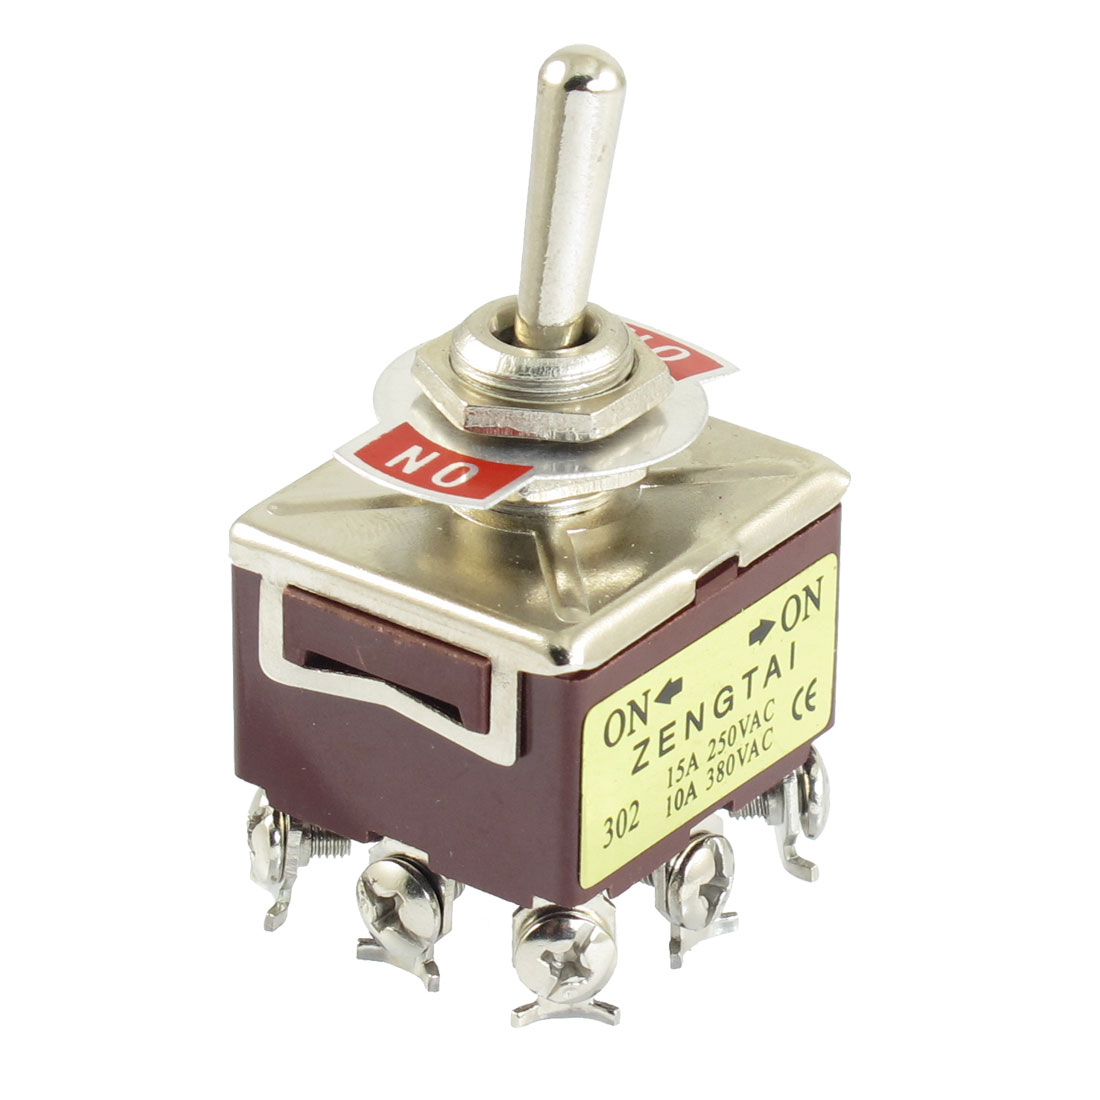 3PDT ON/ON 2 Position 9 Screw Terminals Toggle Switch 15A/250VAC 10A/380VAC